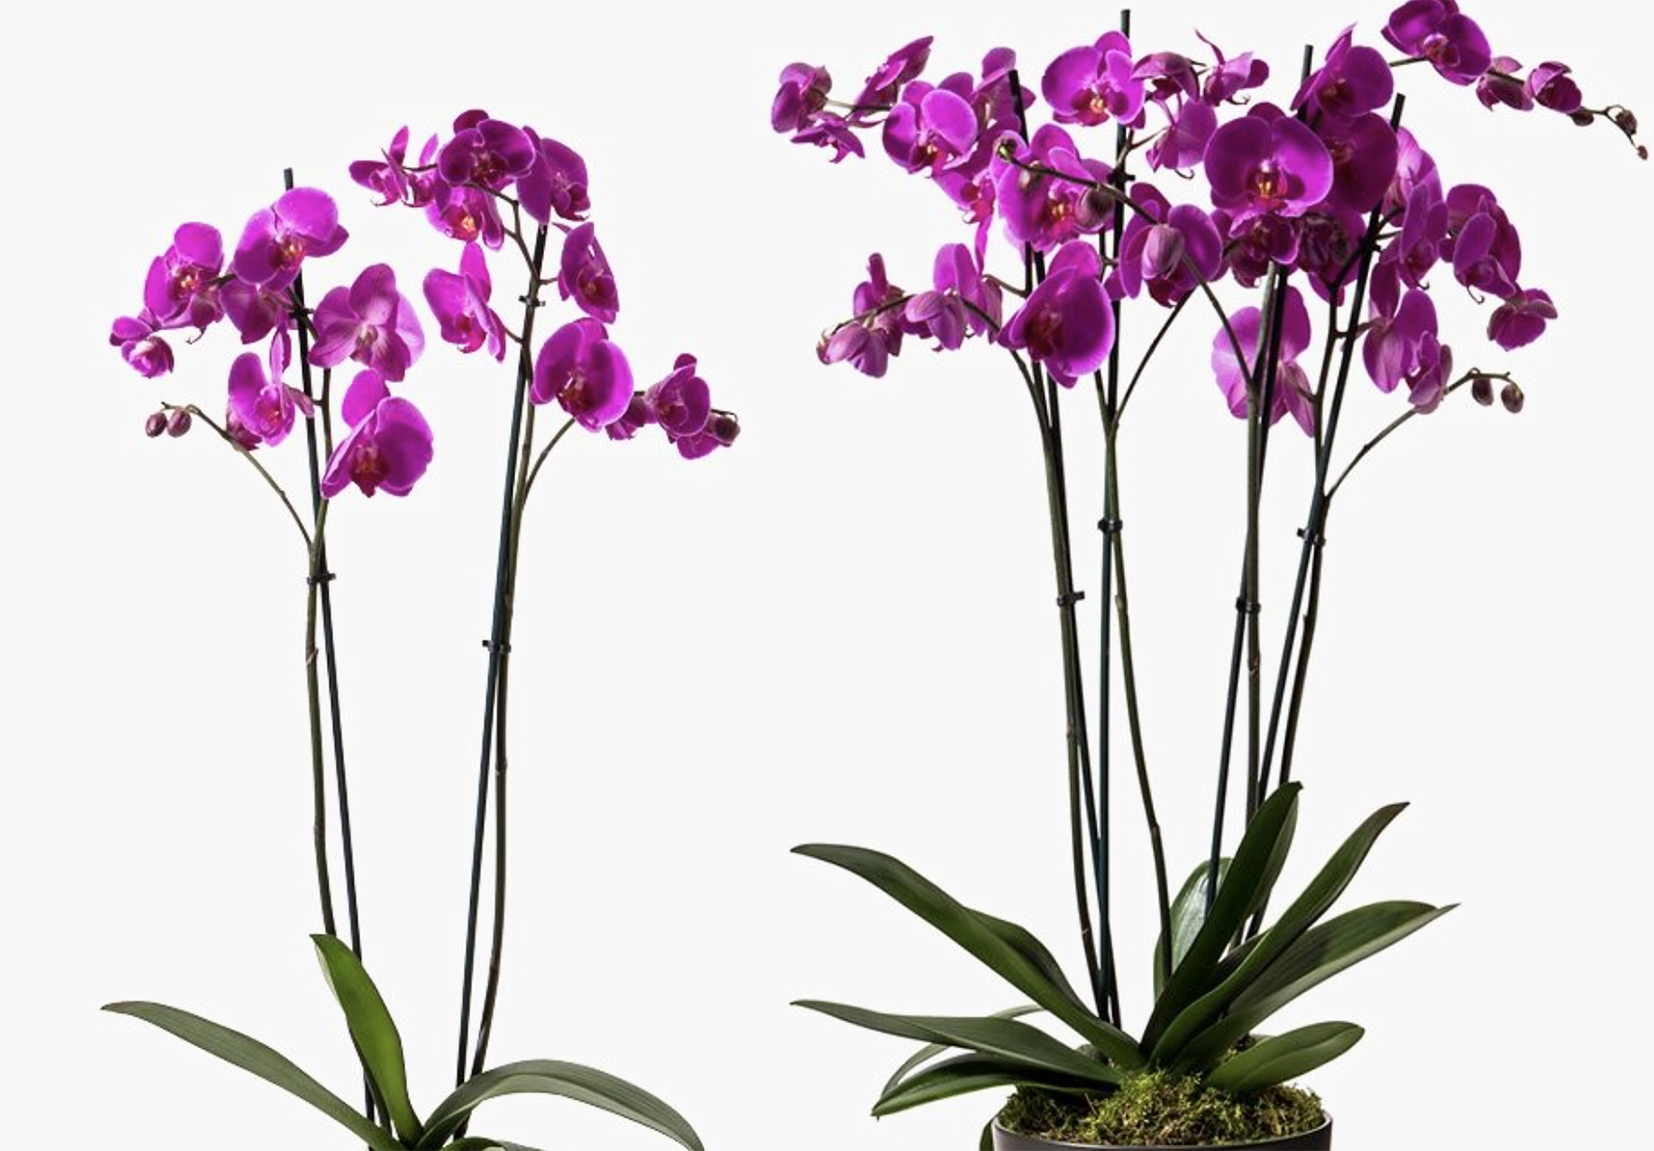 For super duper orchids try Flowerbx